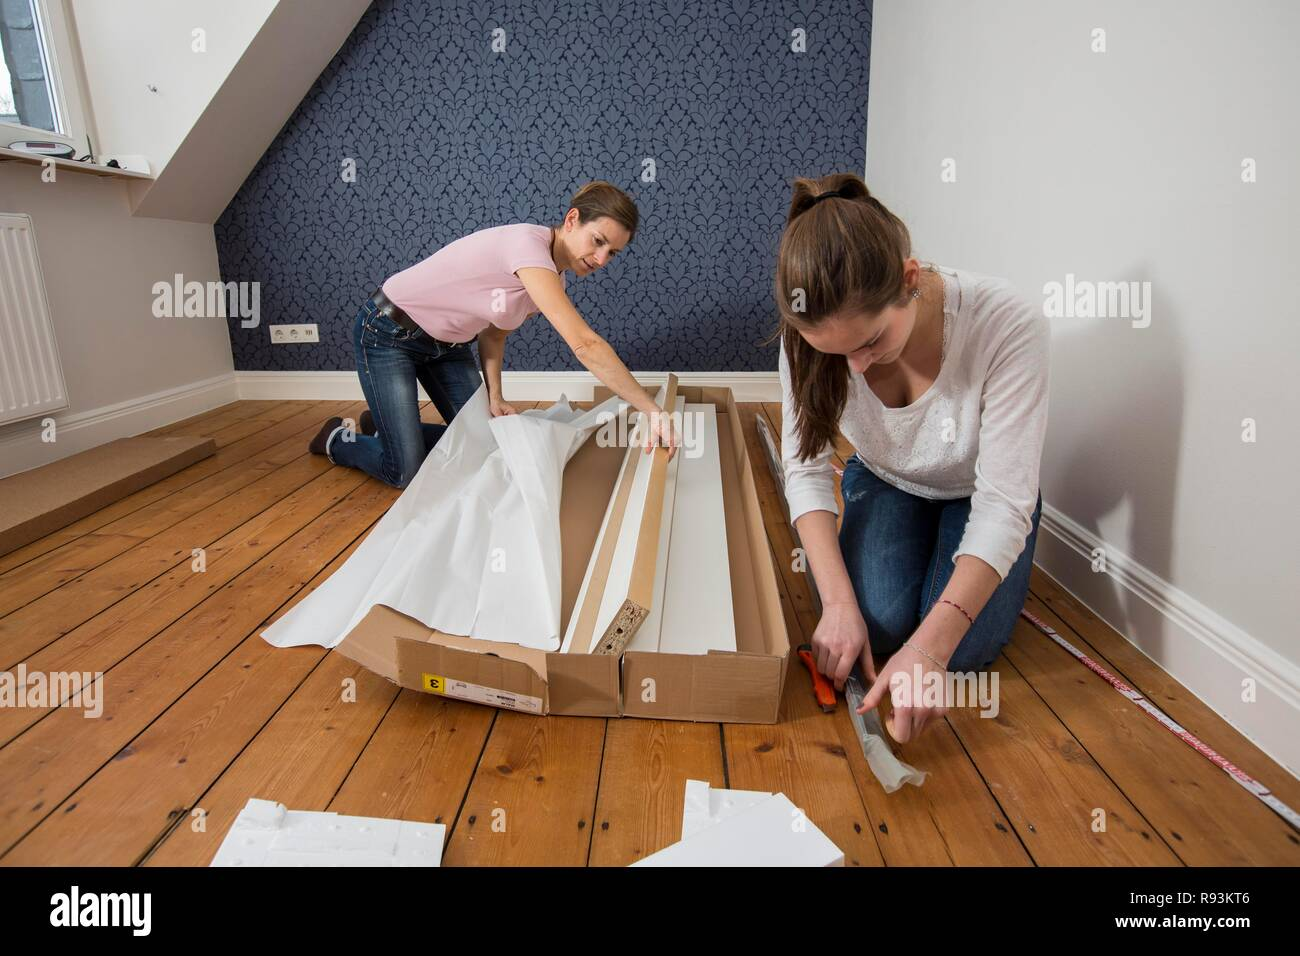 Mother and daughter working together to assemble a bed in the daughter's room, bed assembly set, Germany - Stock Image